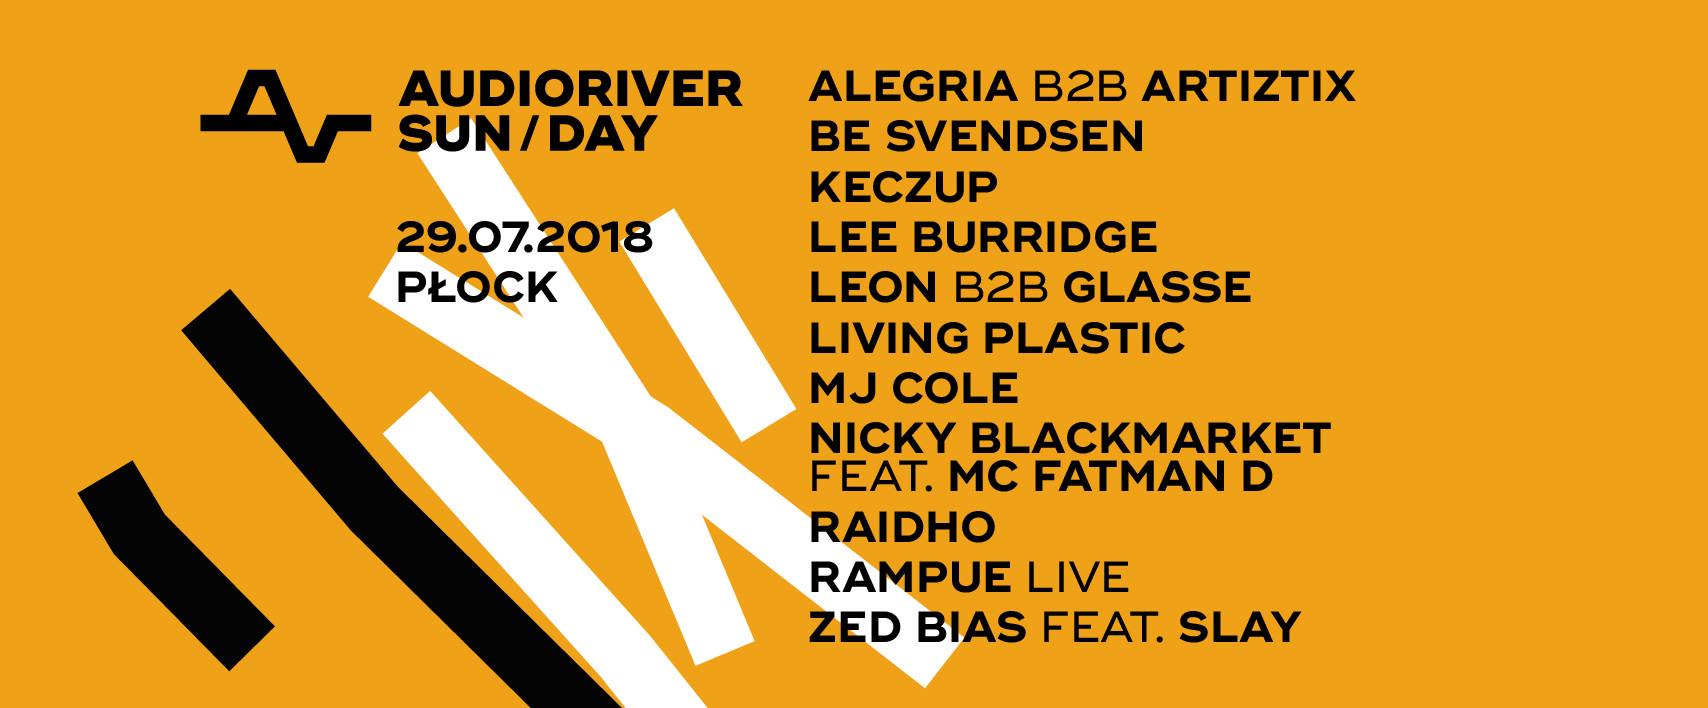 Audioriver 2018 sunday line up